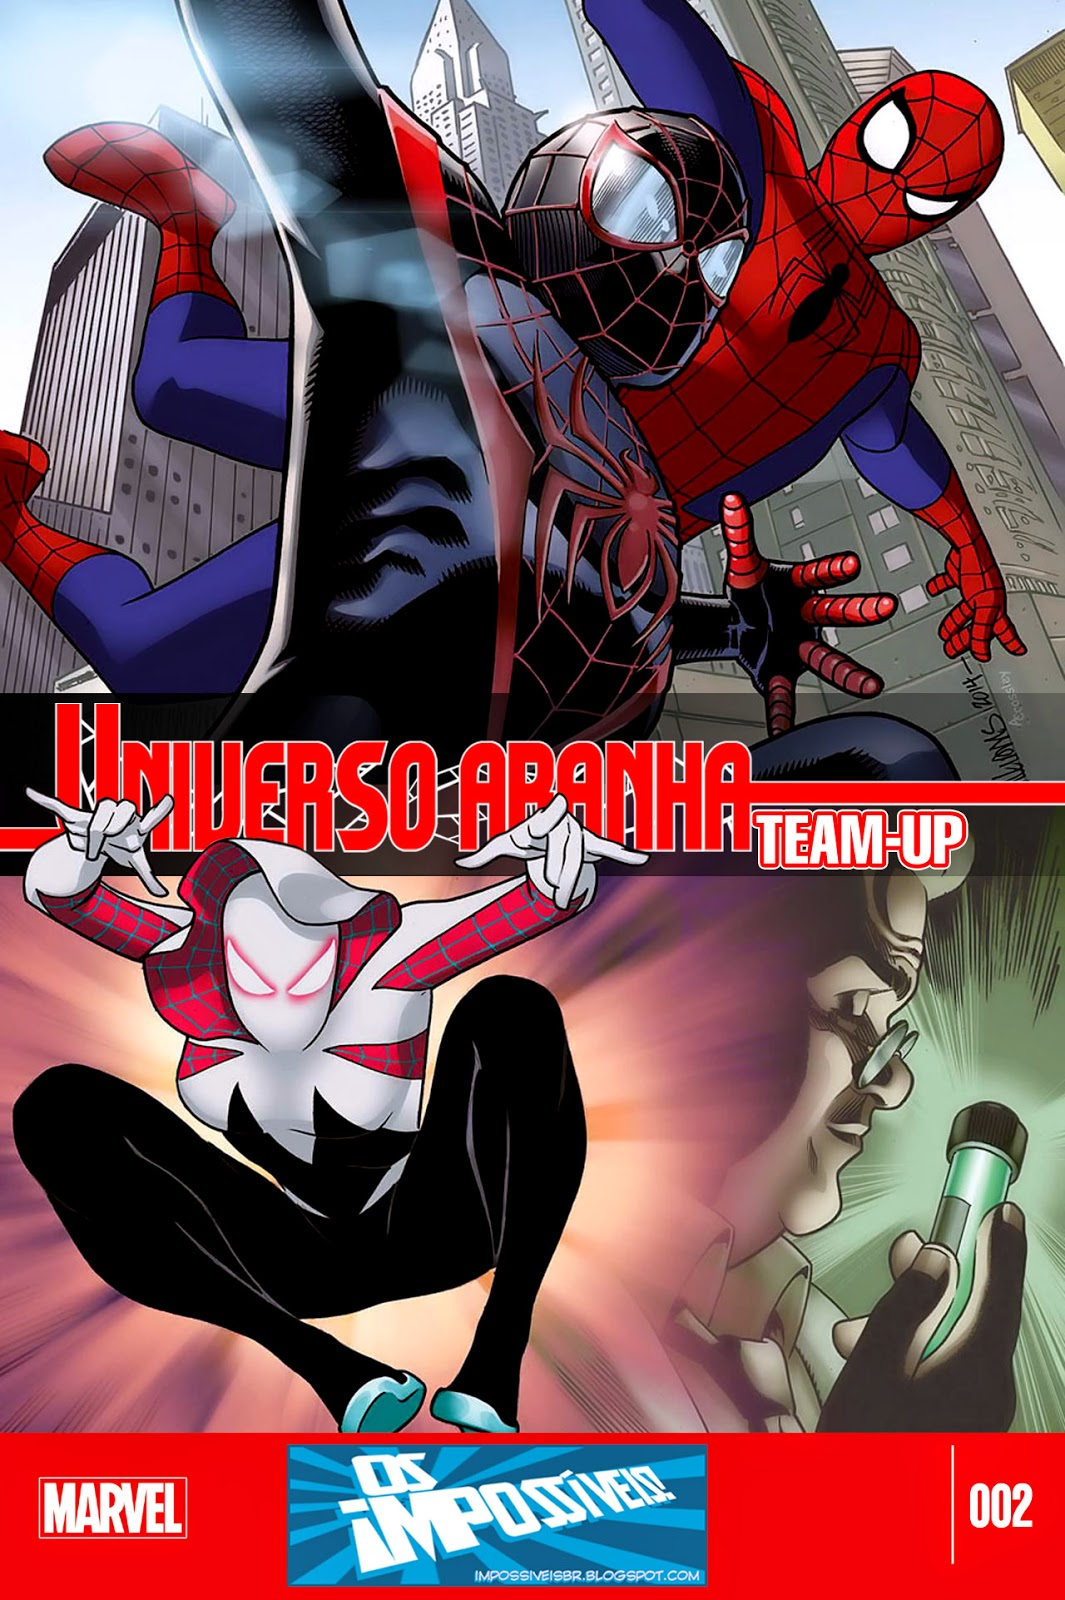 Universo-Aranha Team-Up #2